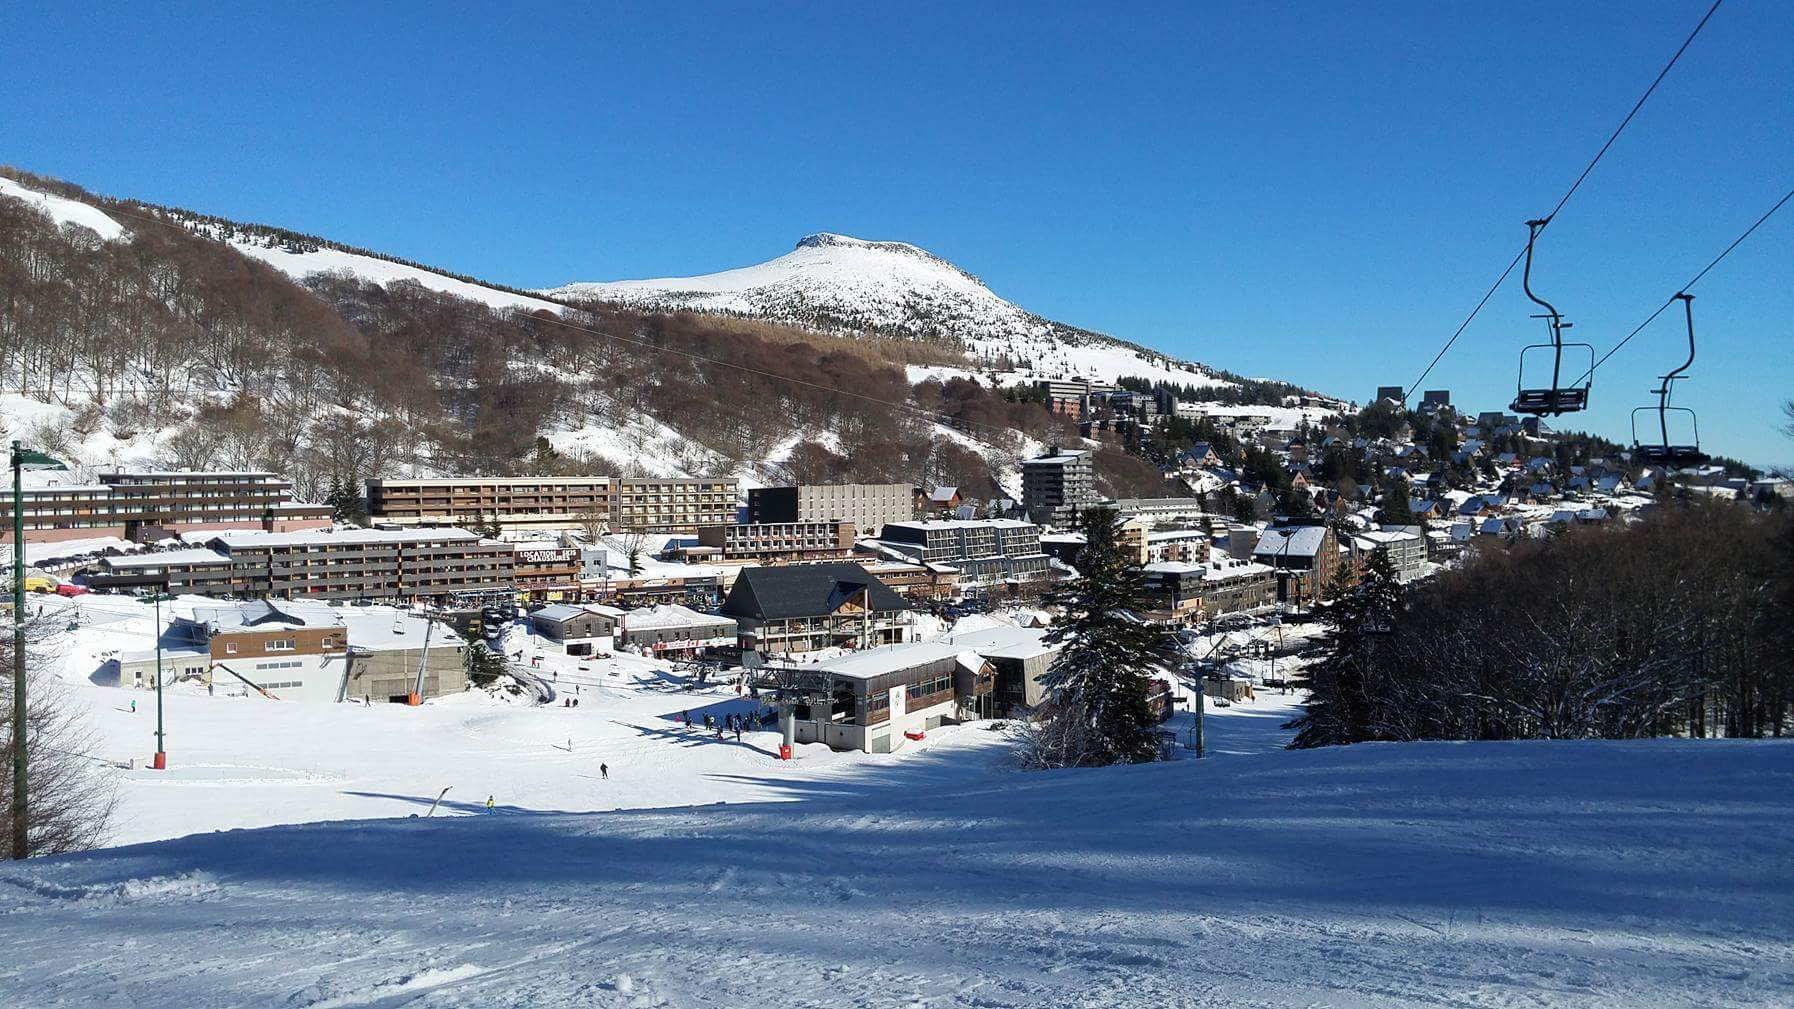 Property for sale in superbesse